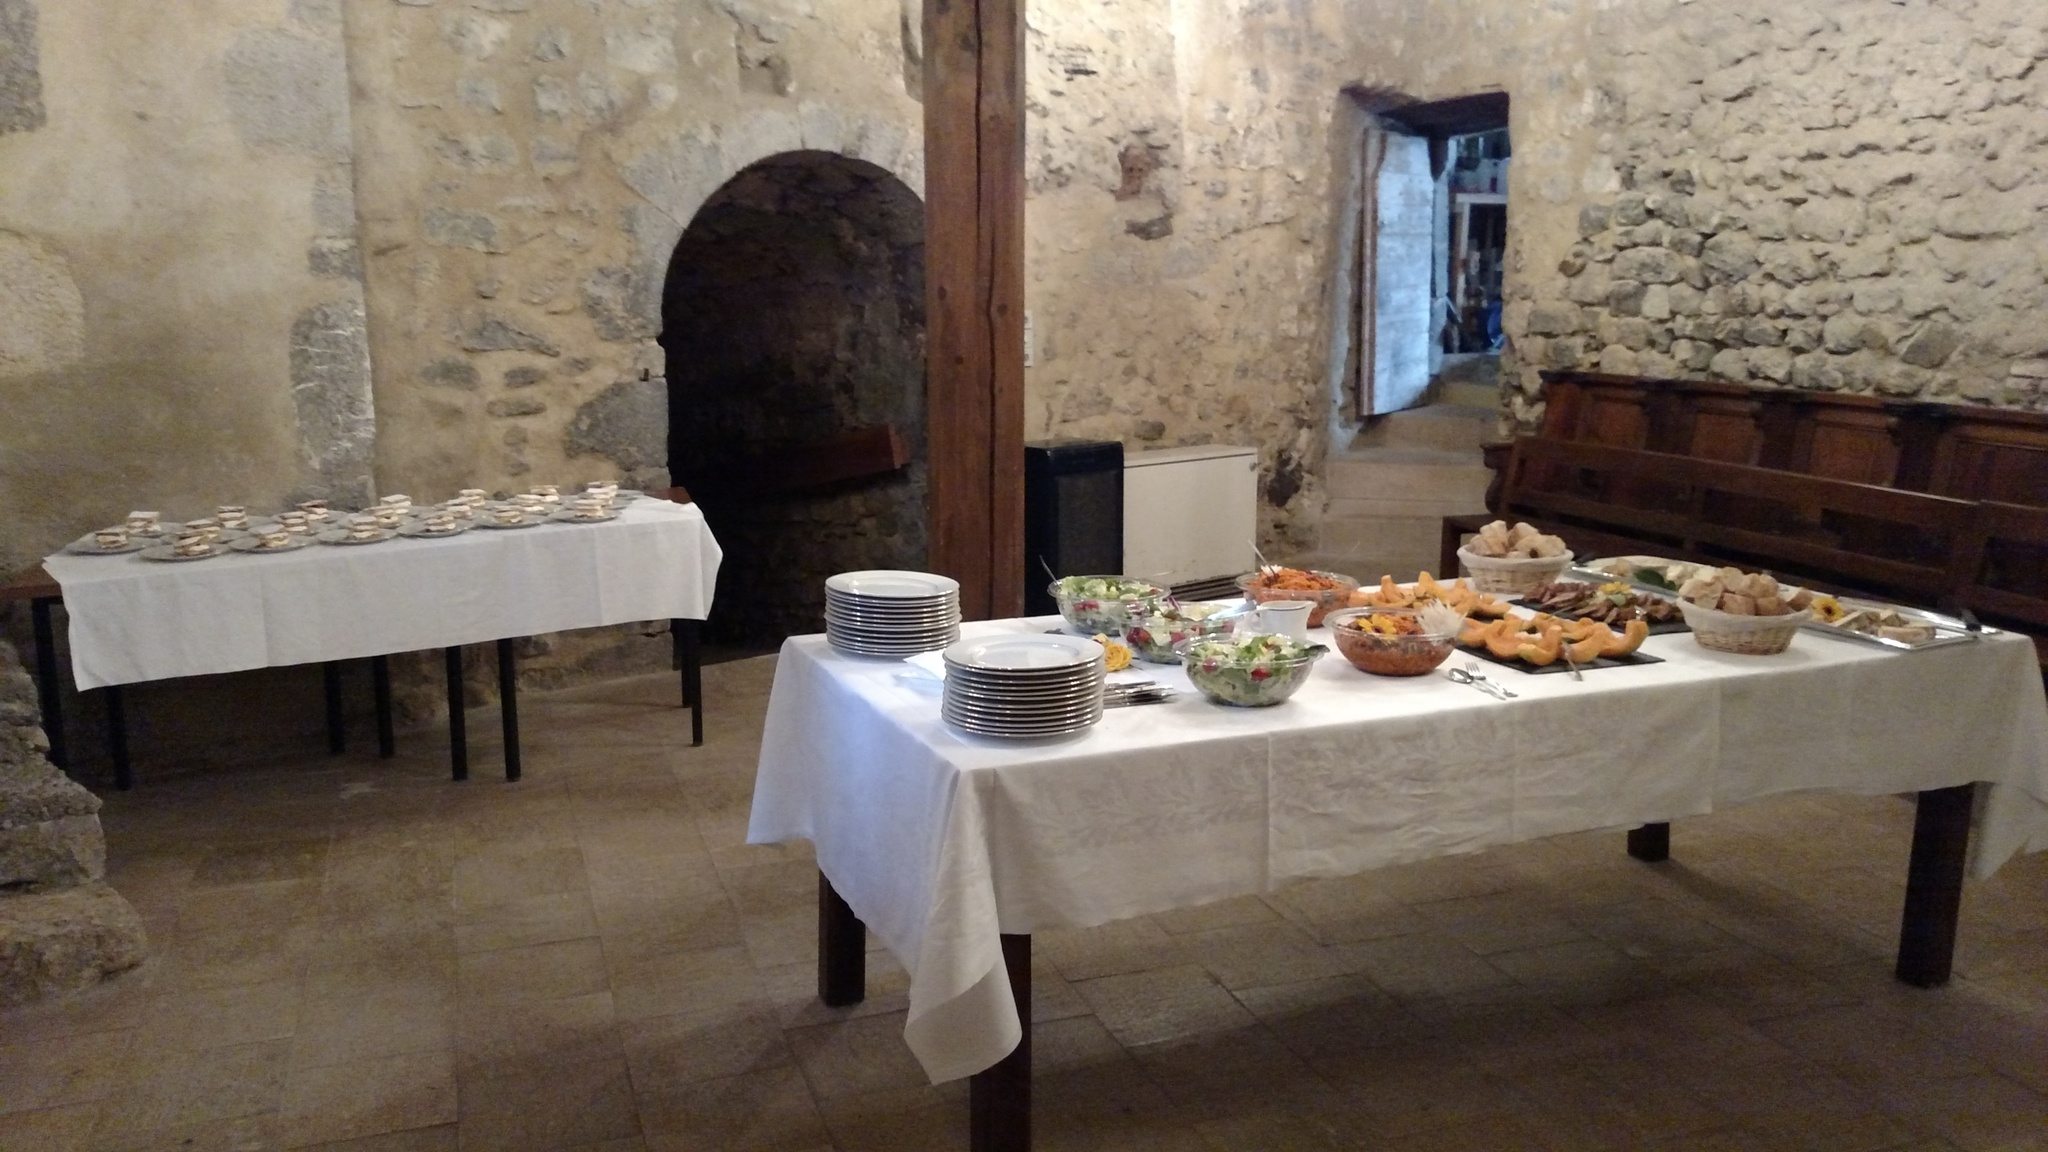 Tables with a buffet meal set up in an old room of the Priory